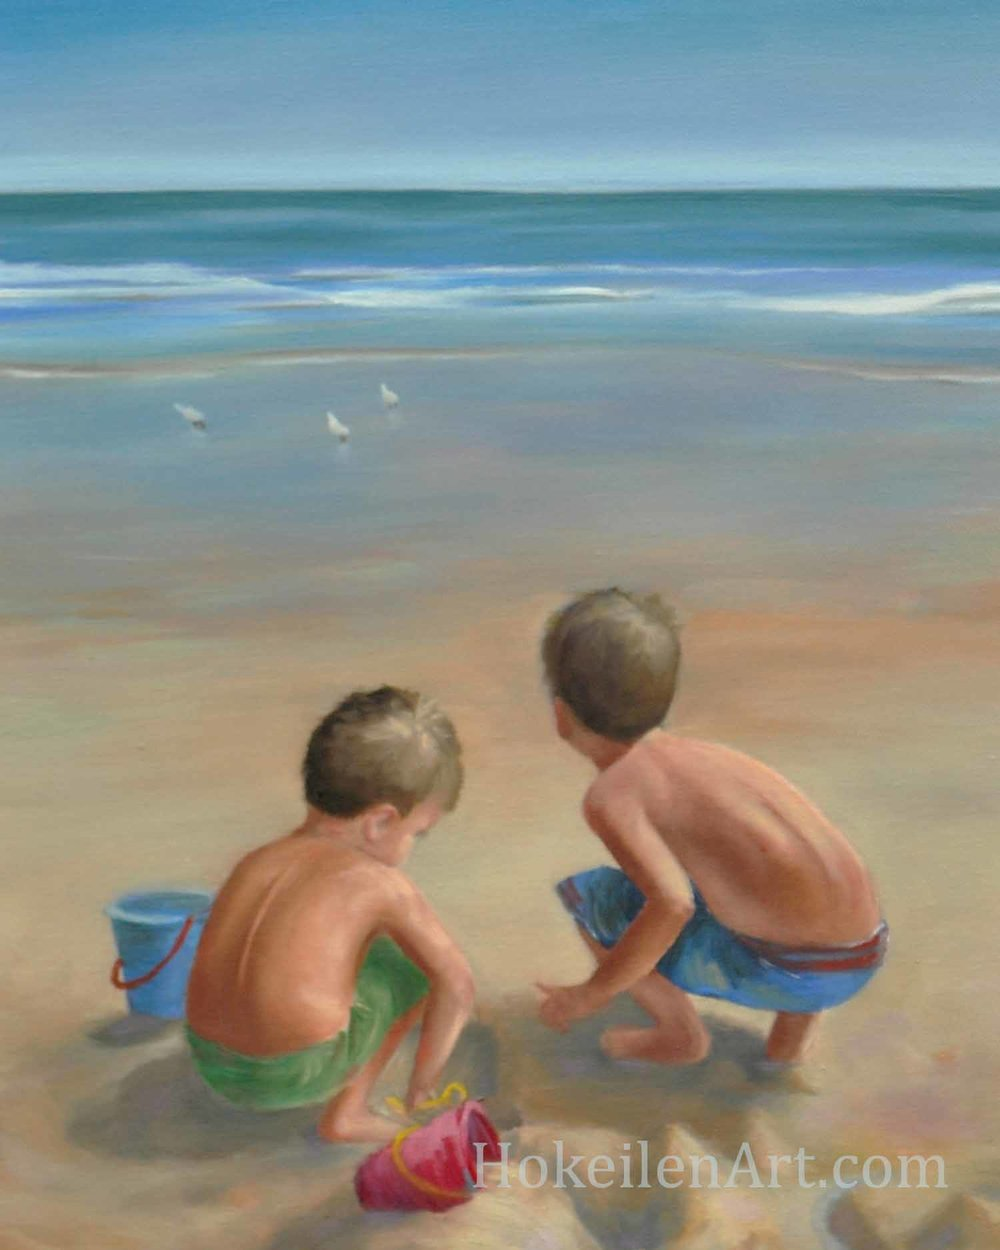 Boys on the Beach by Monica Hokeilen, oil on canvas, 18x24 inches